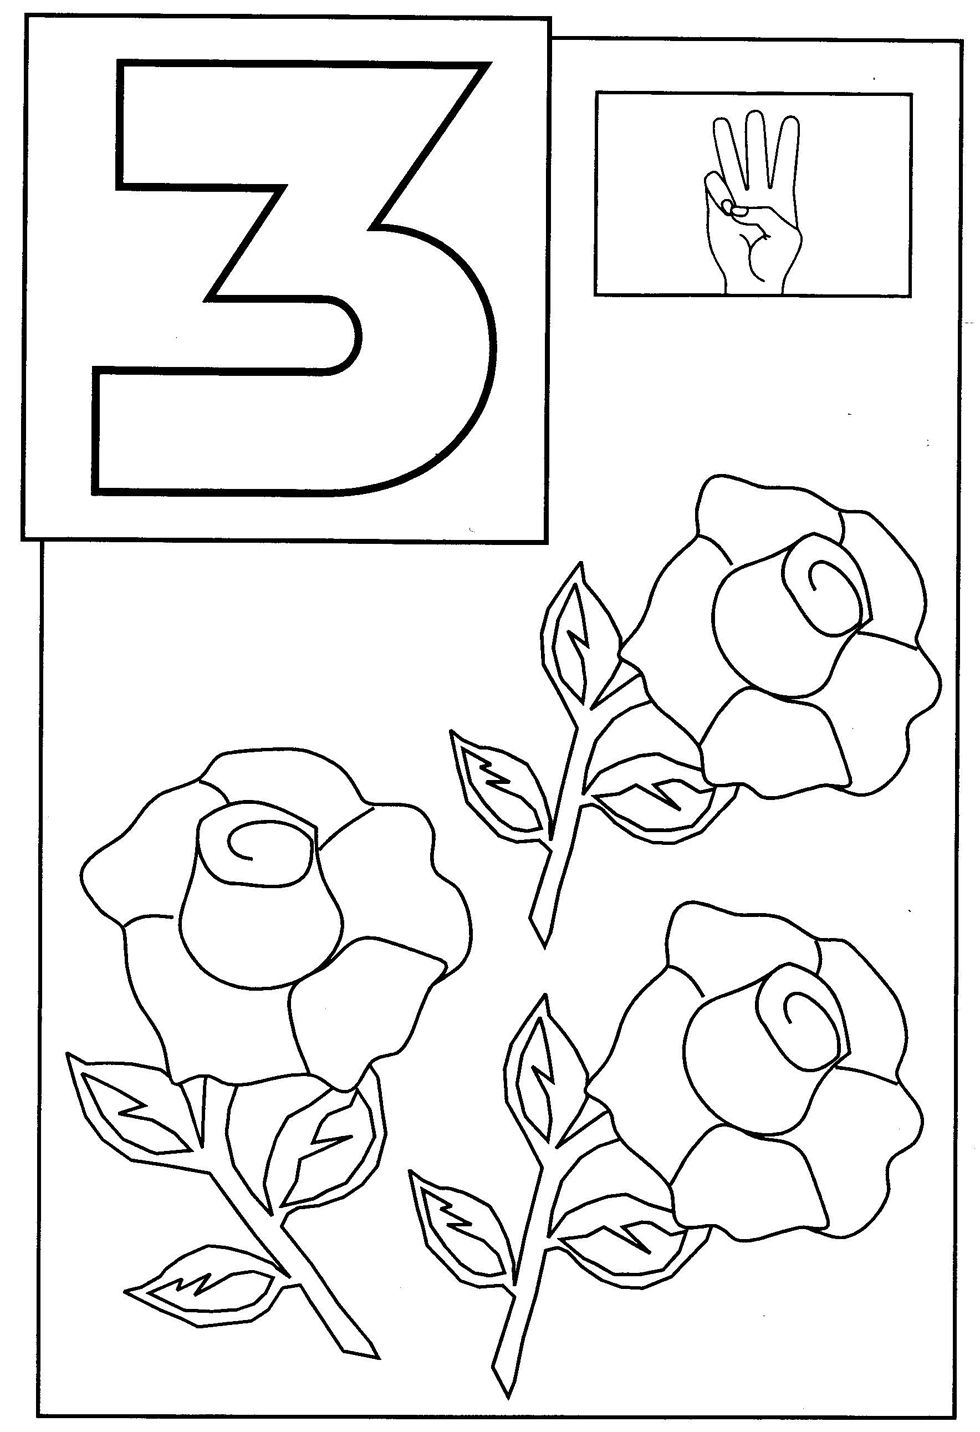 toddler coloring pages numbers number 3 coloring pages for kids counting sheets numbers pages coloring toddler